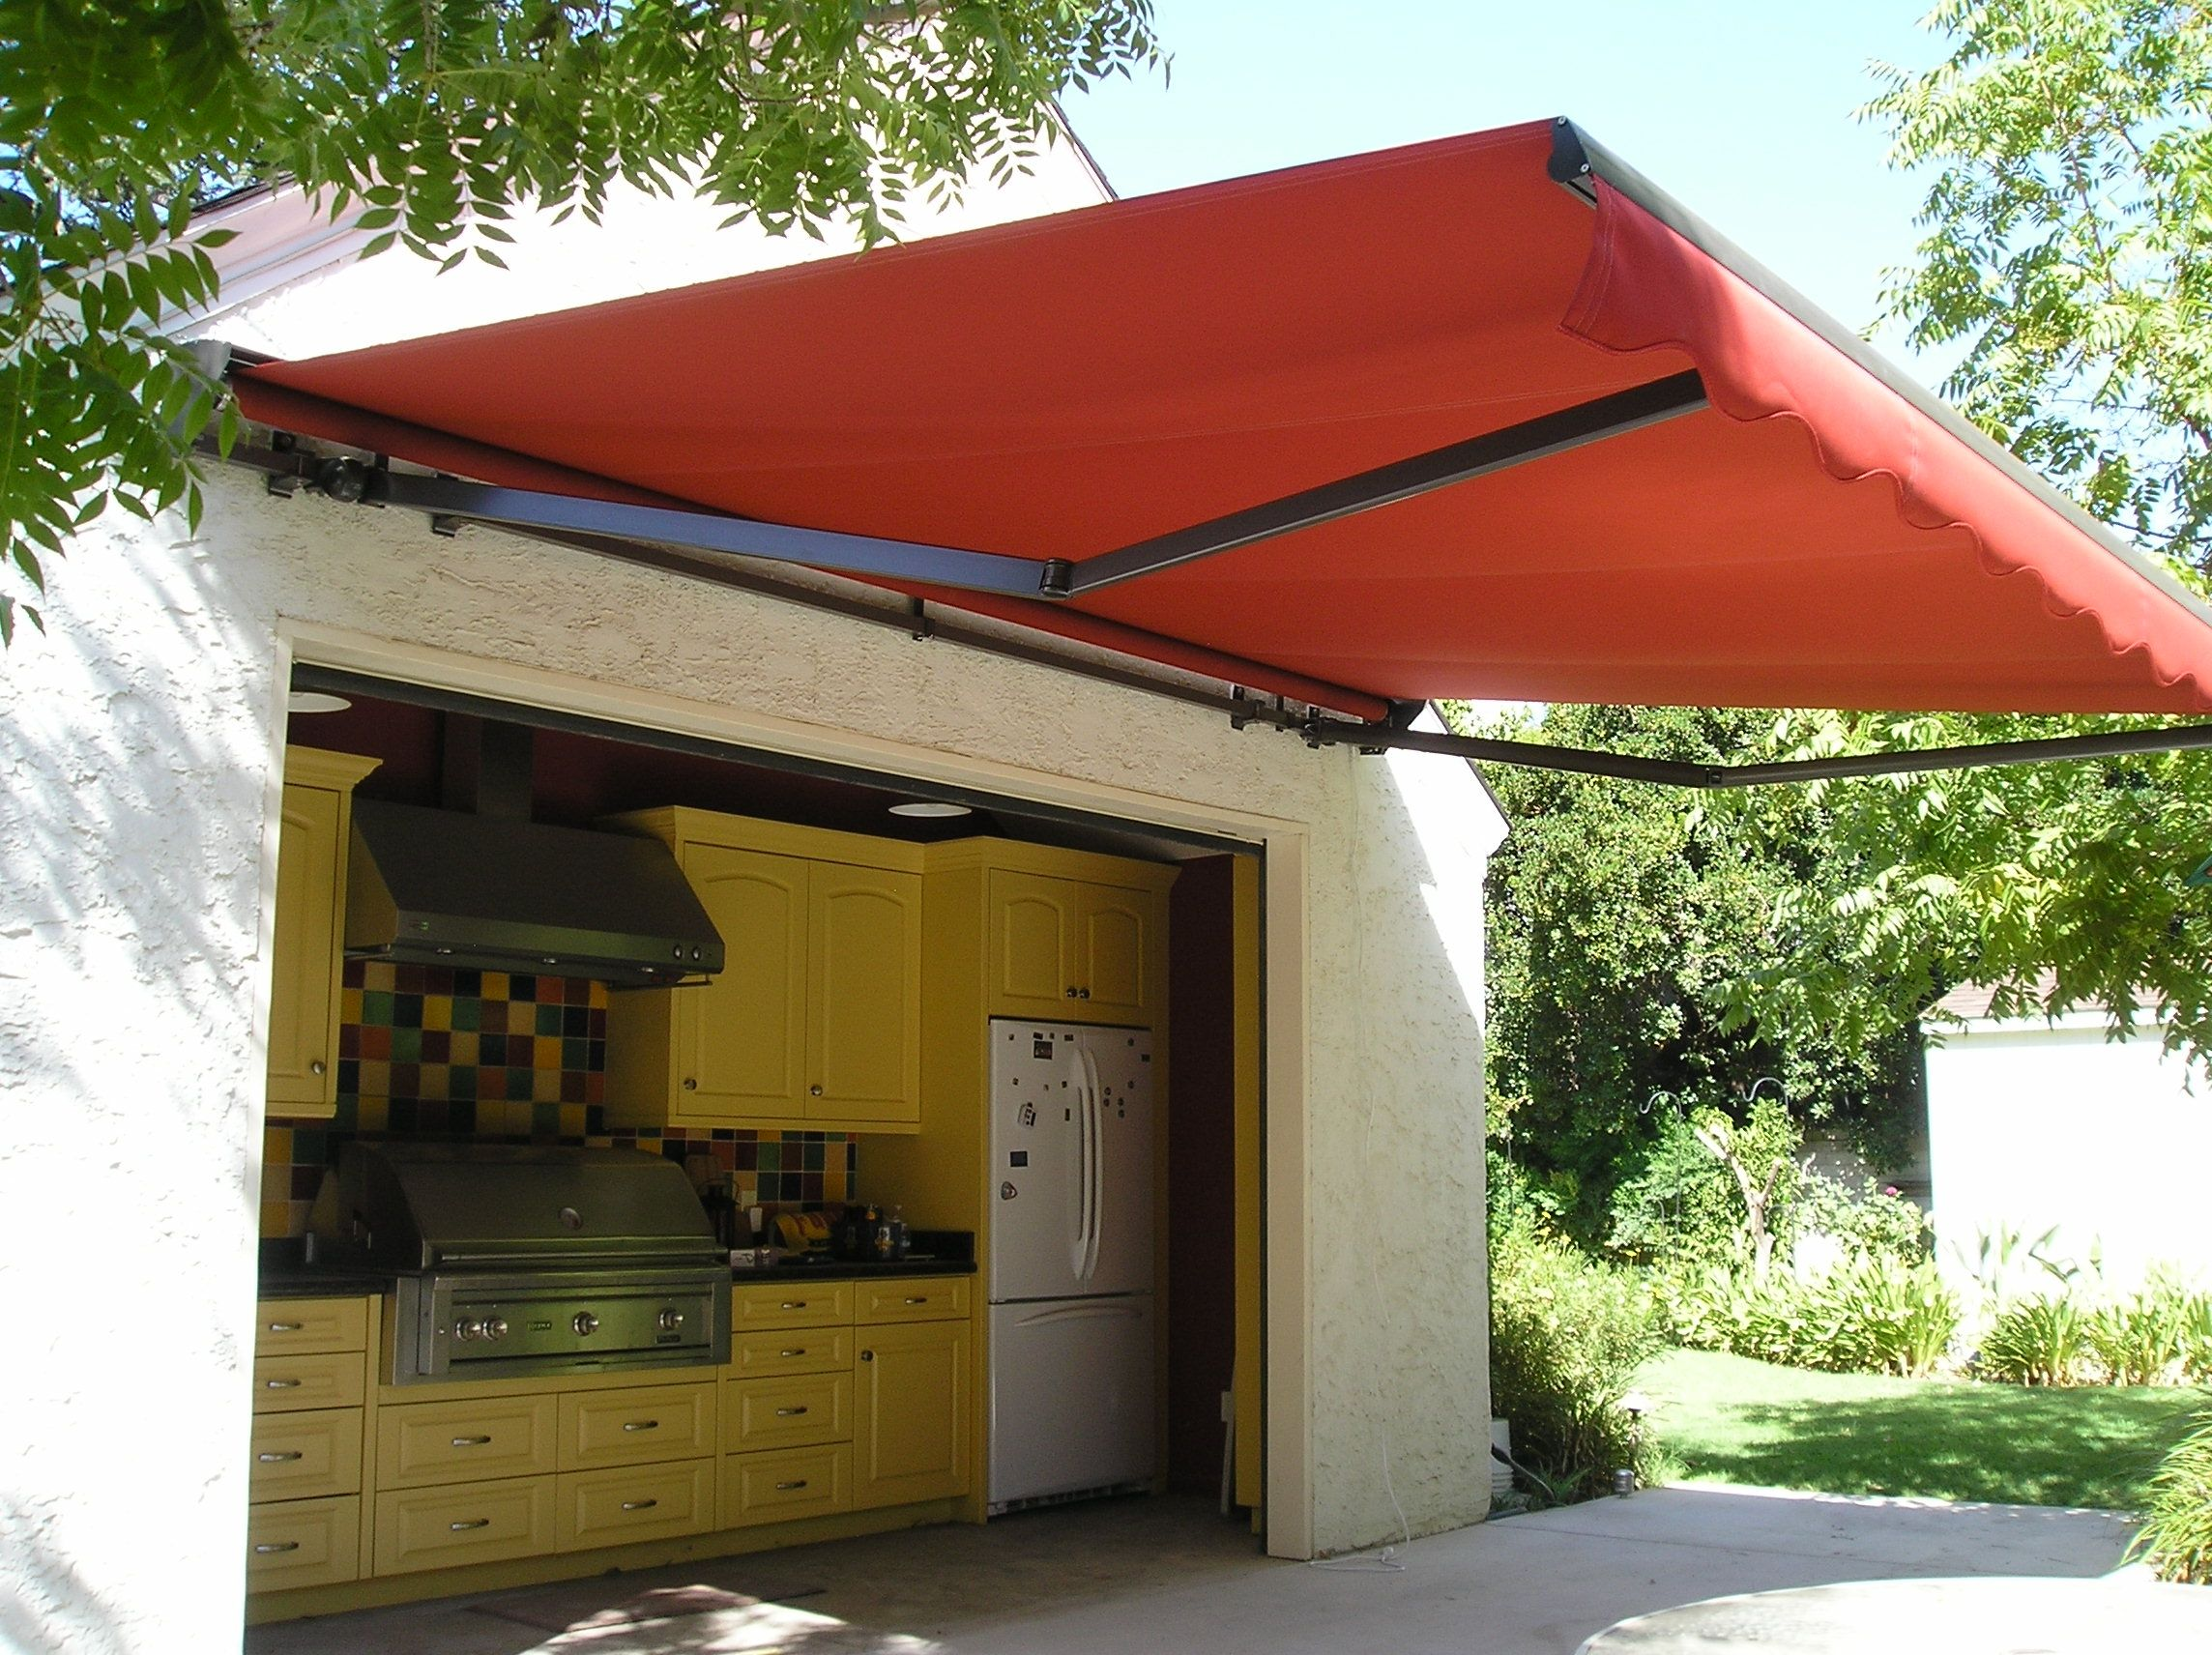 operation awning the awnings retractableawnings folding com retractable palermo motorized manual plus products lateral arm residential